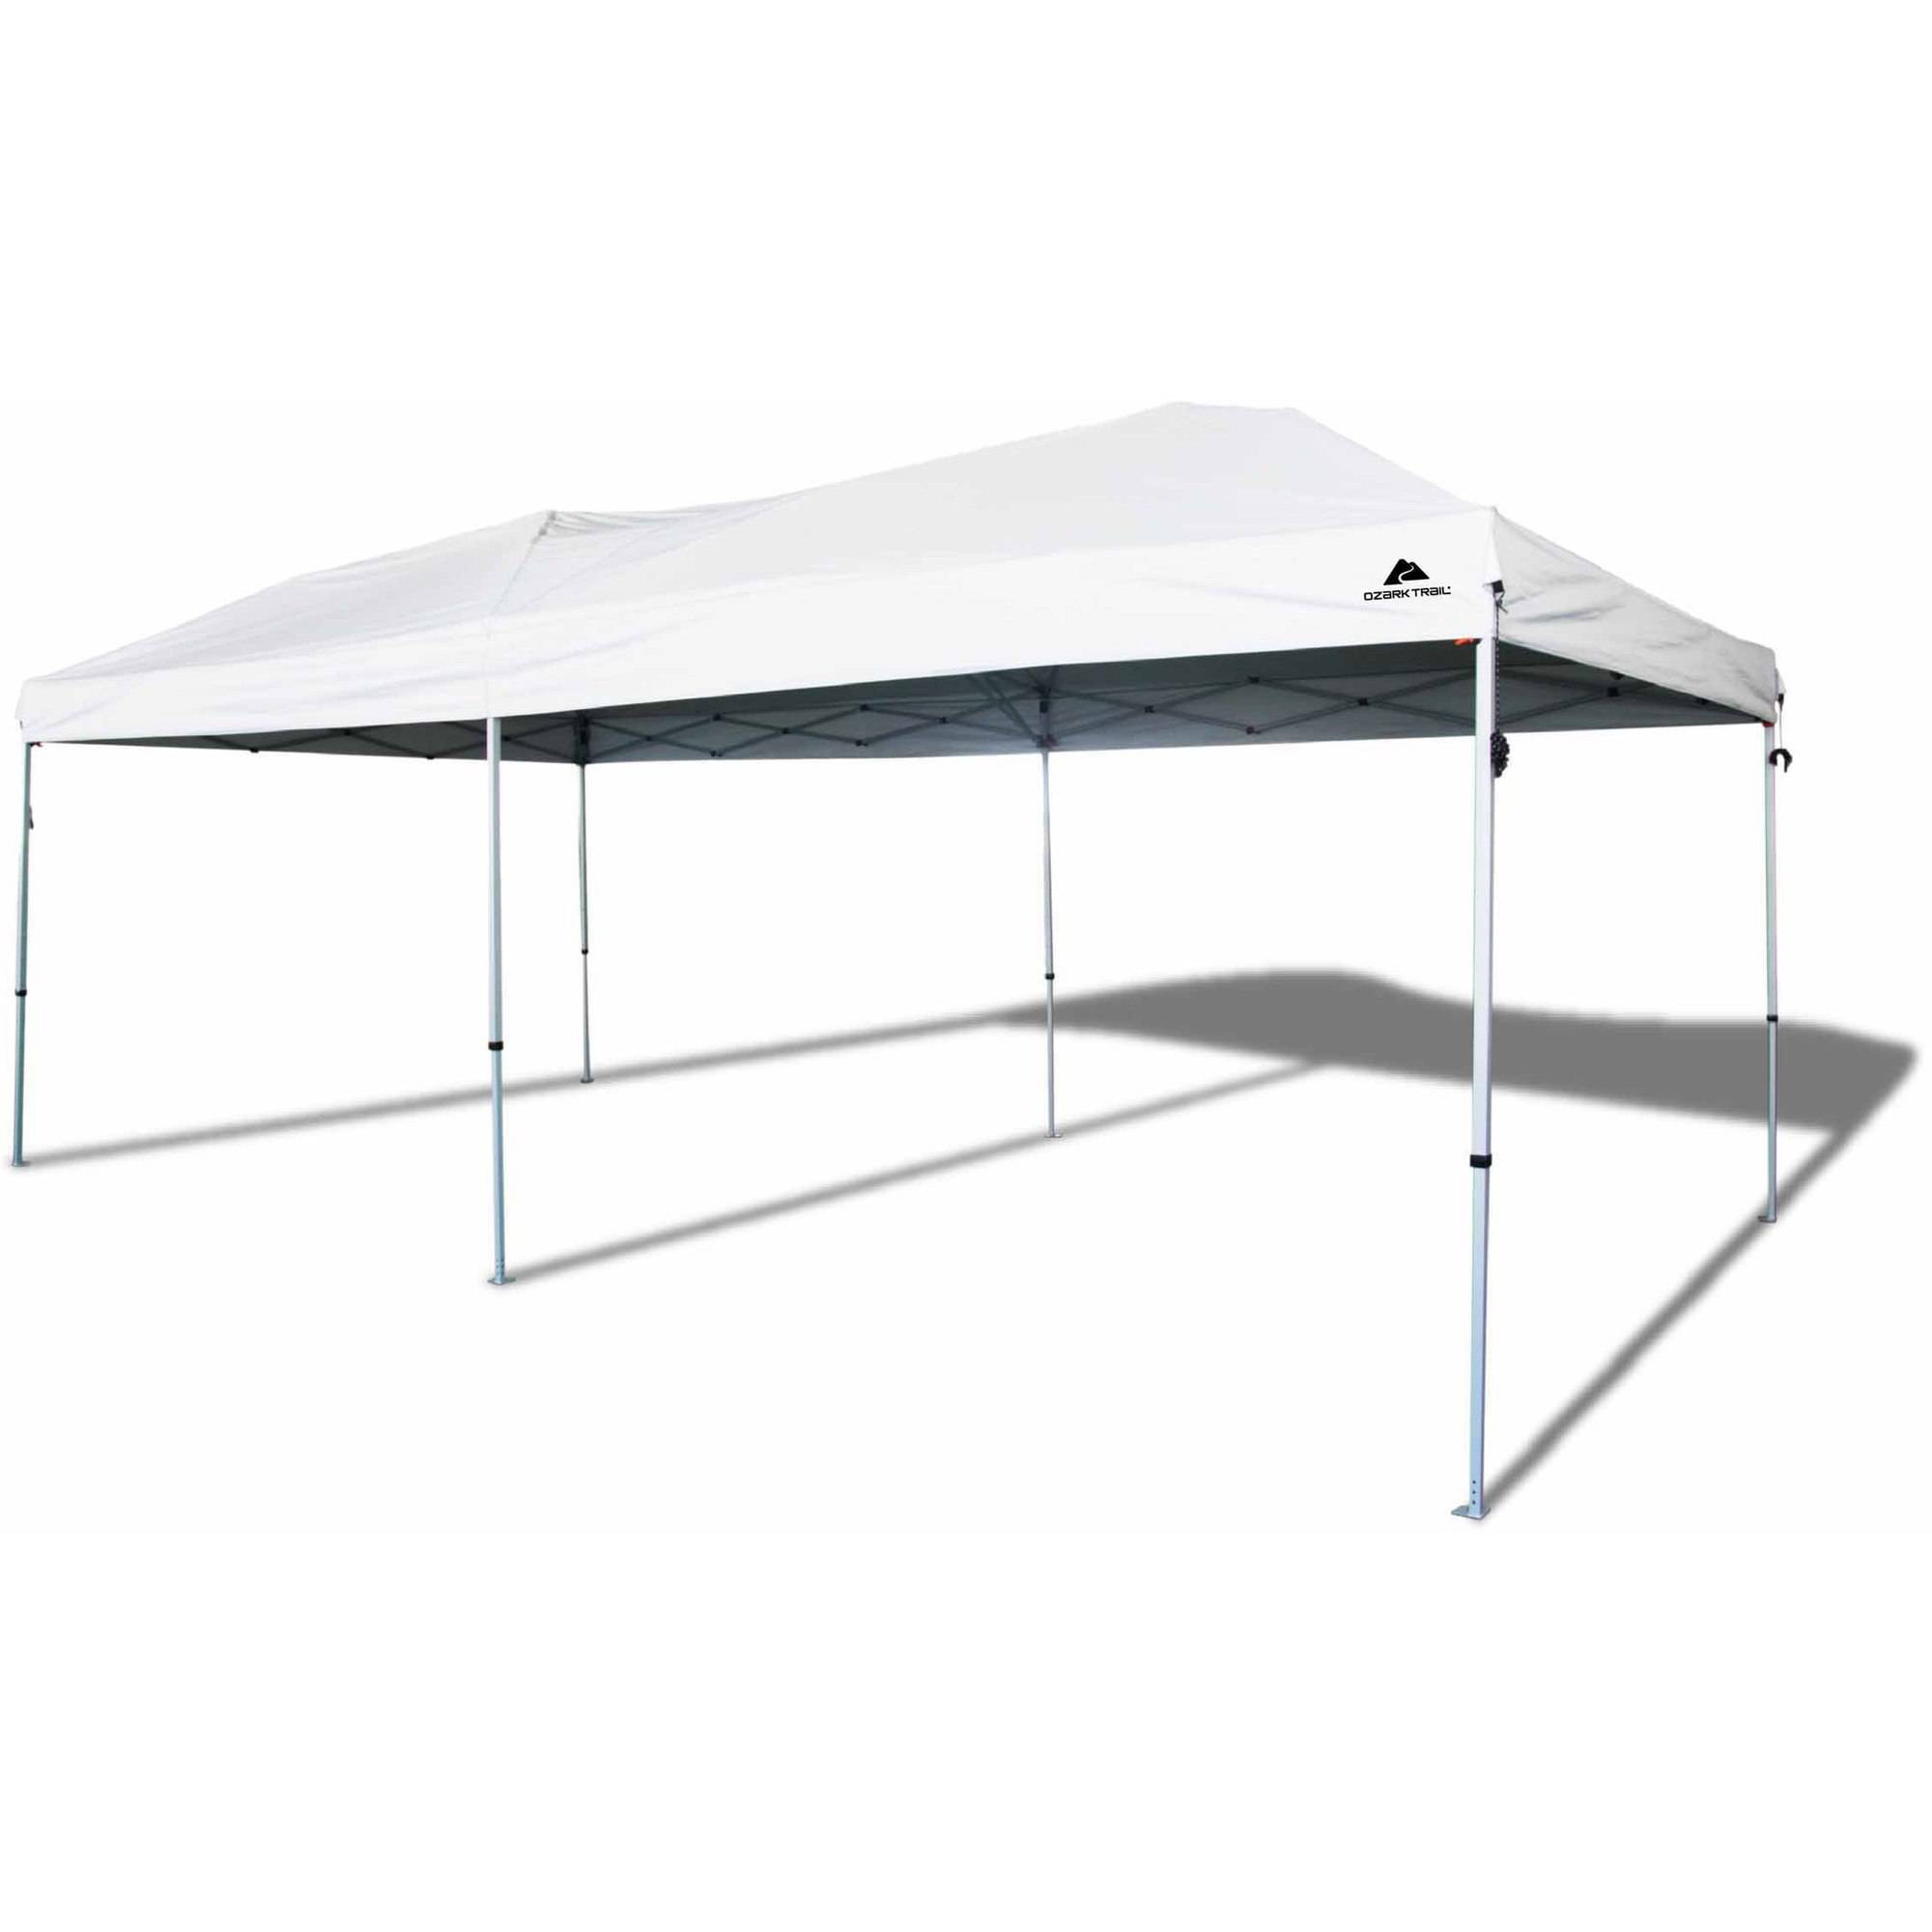 Ozark Trail 20′ x 10′ Straight Leg Instant Canopy (200 Sq. ft Coverage)